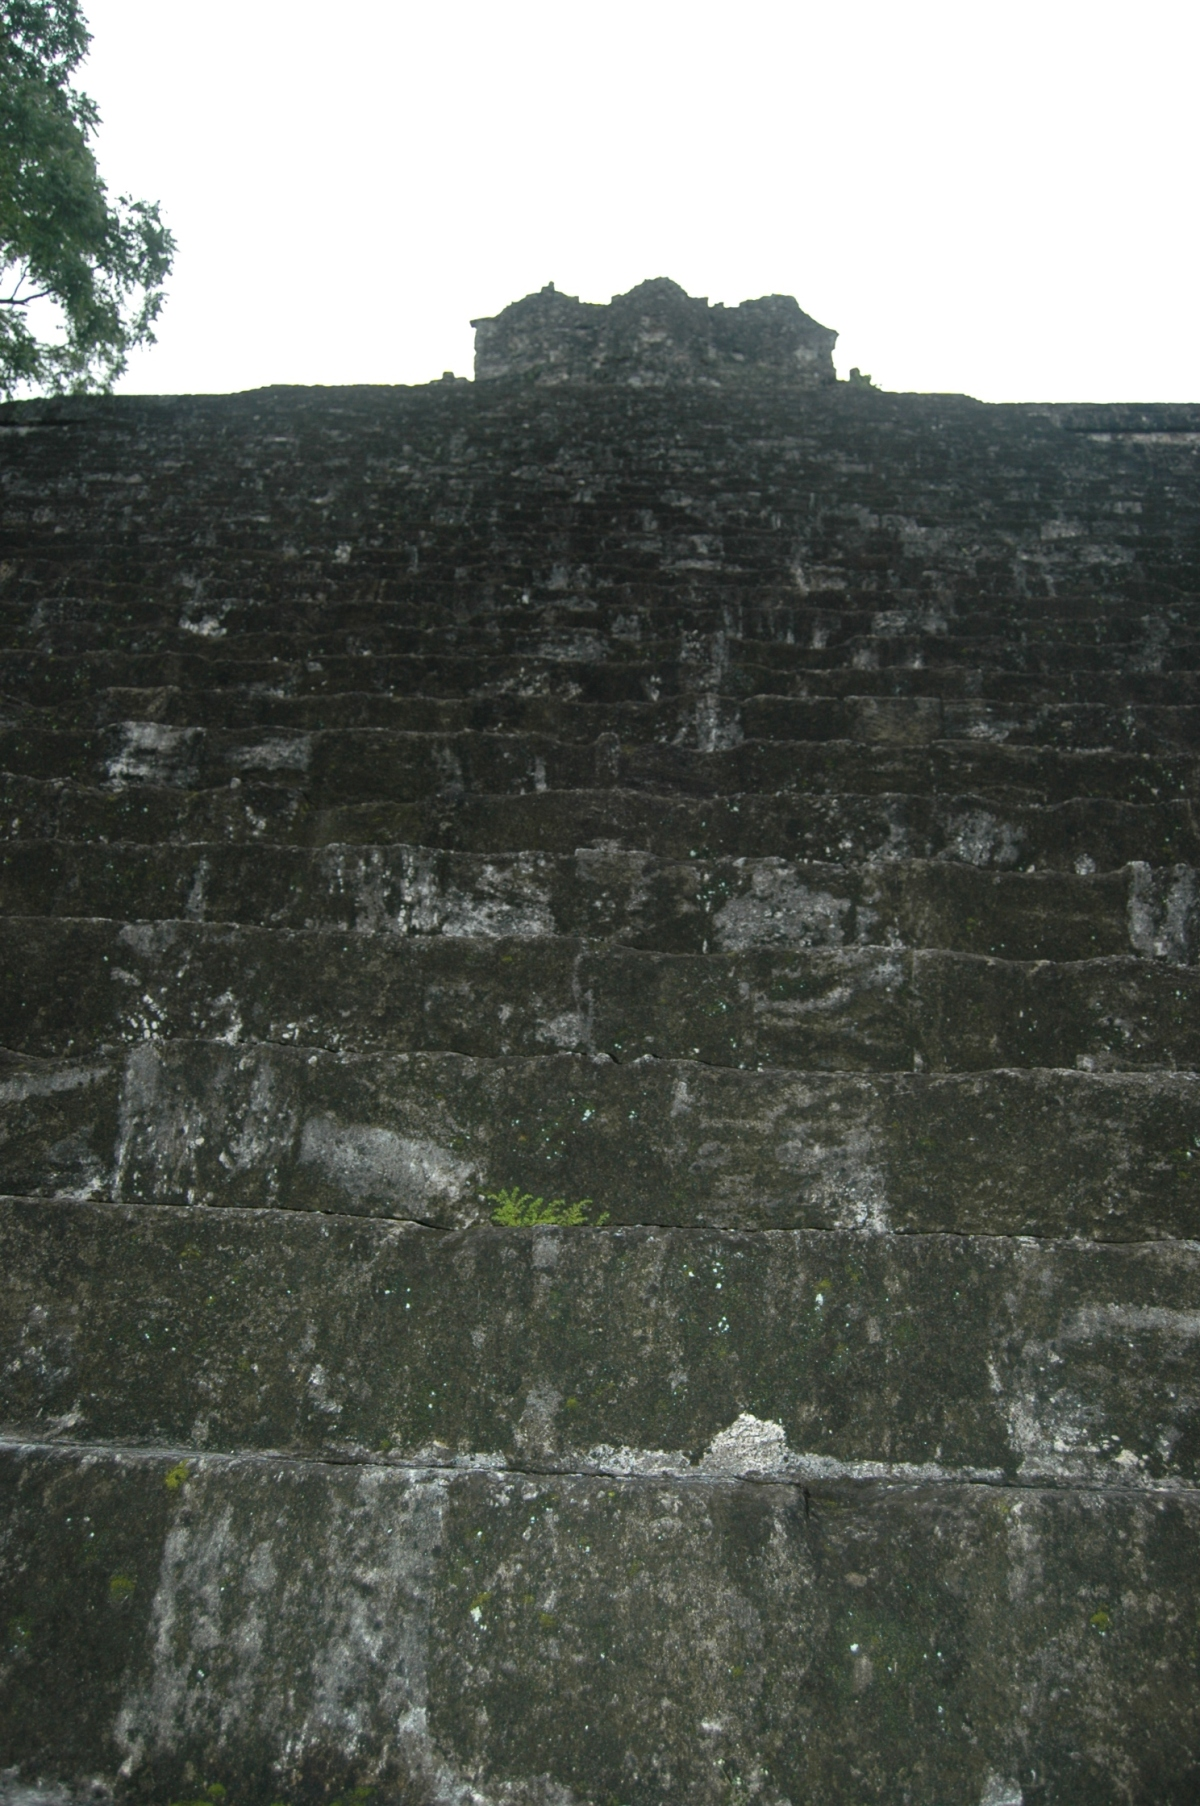 Steps of a temple in the Mayan Ruins of Tikal, Peten, Guatemala